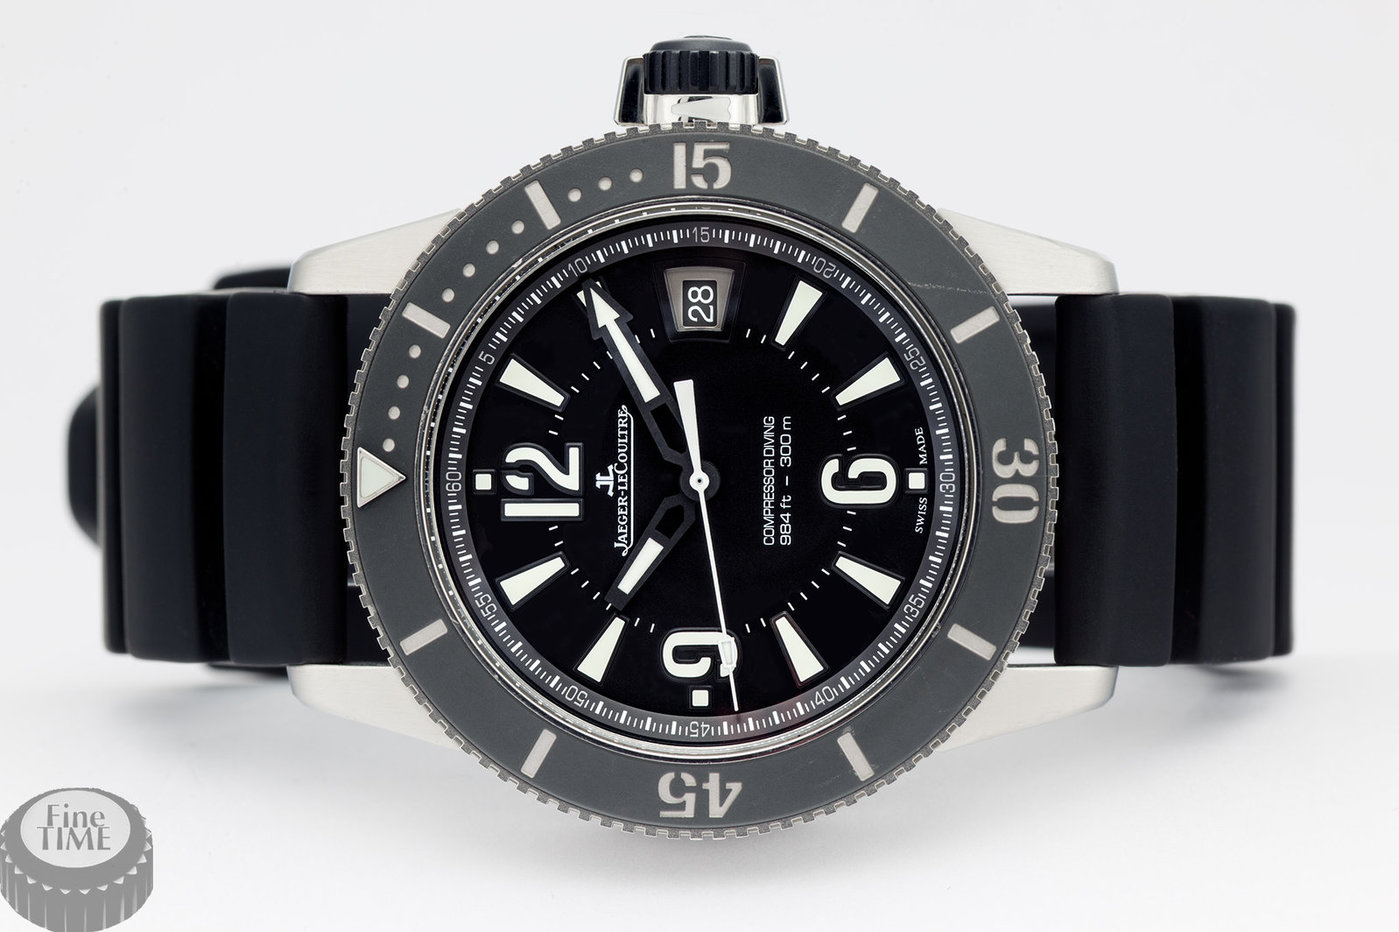 jaeger-lecoultre-master-compressor-diving-automatic-navy-seals-2018470-2013-01.jpg